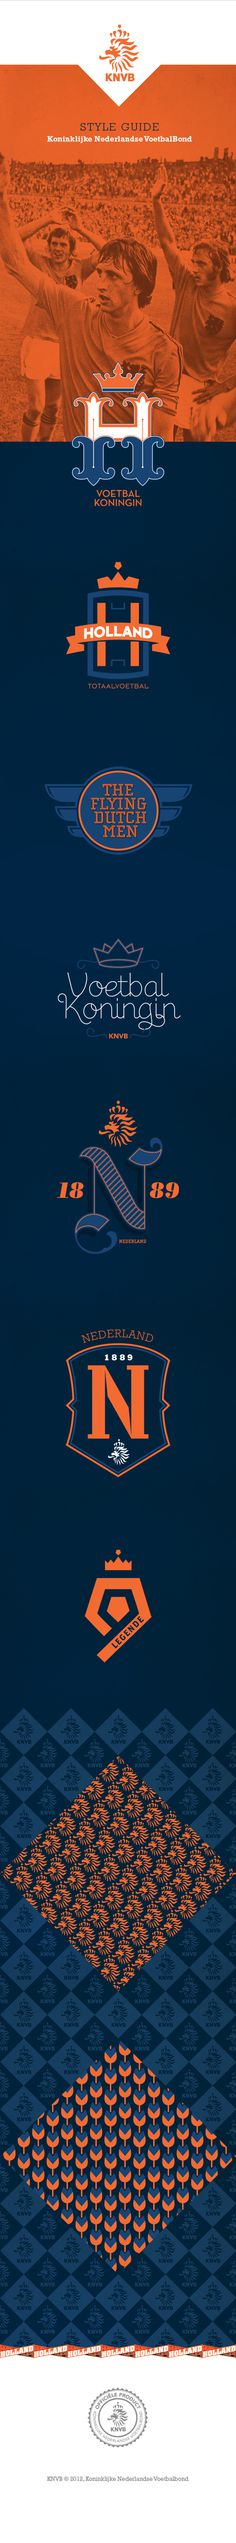 KNVB on Behance #port